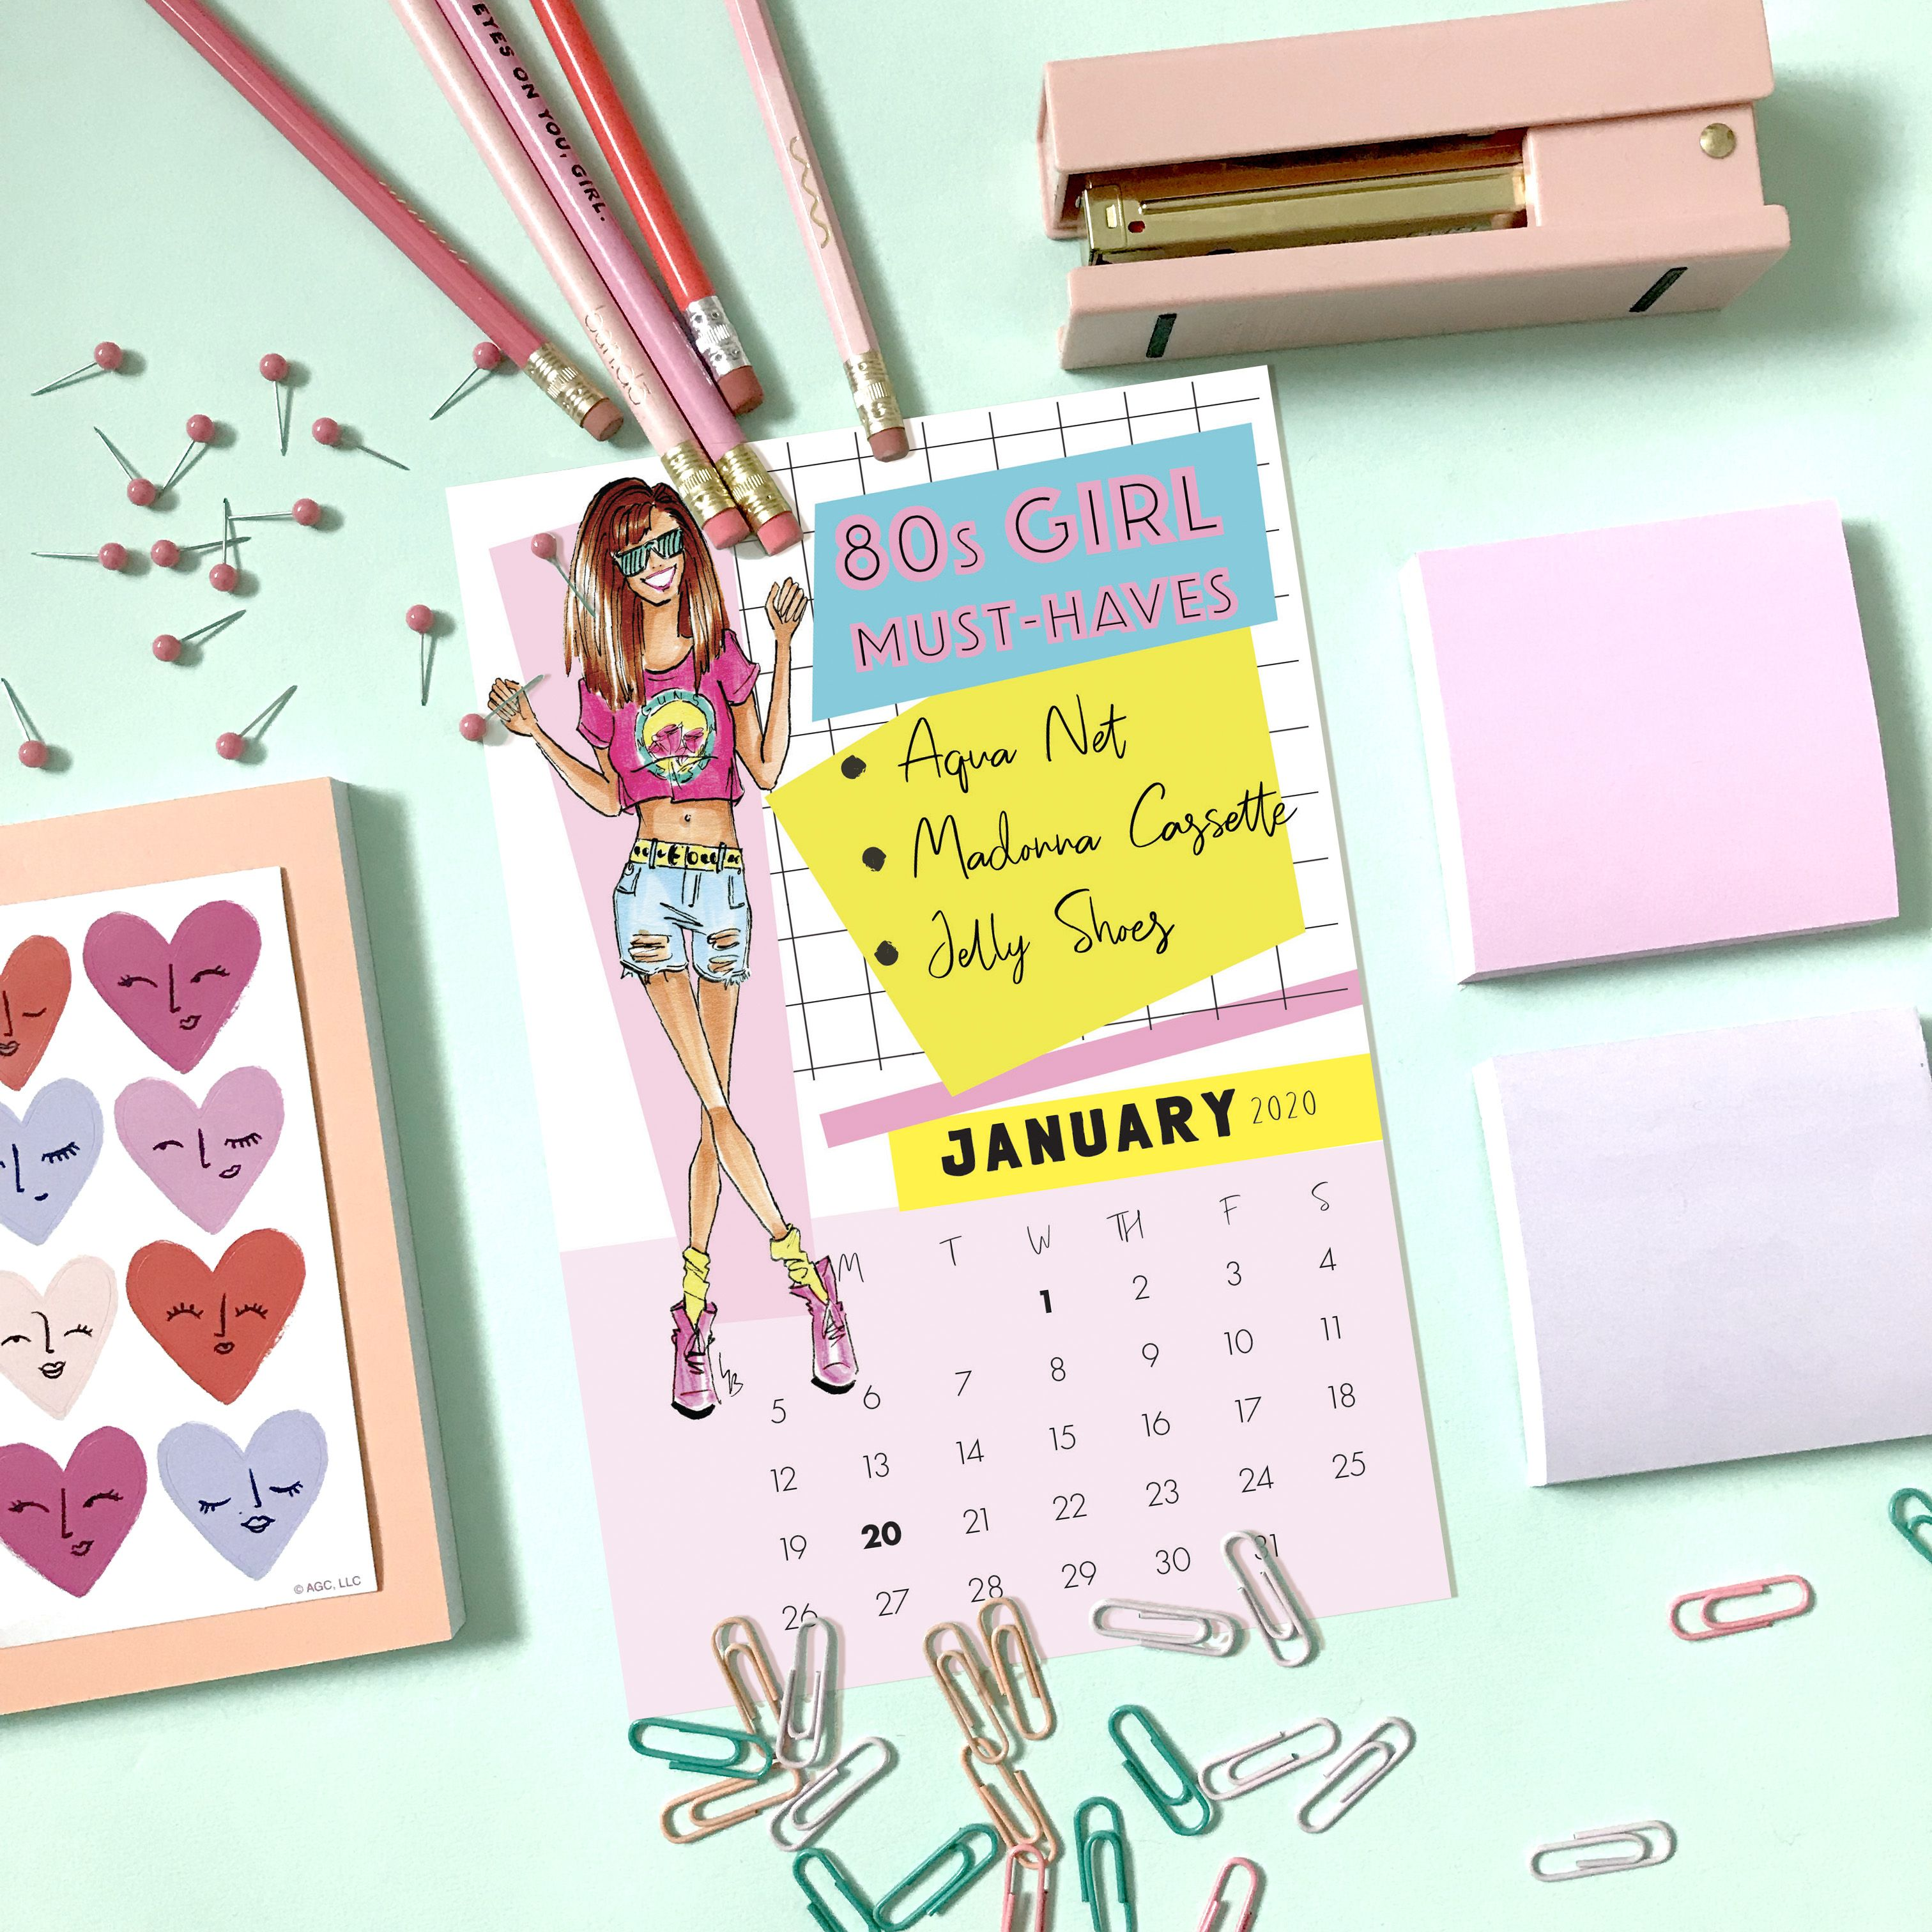 2020 Desk Calendar 80s Desk Calendar Fashion Illustration